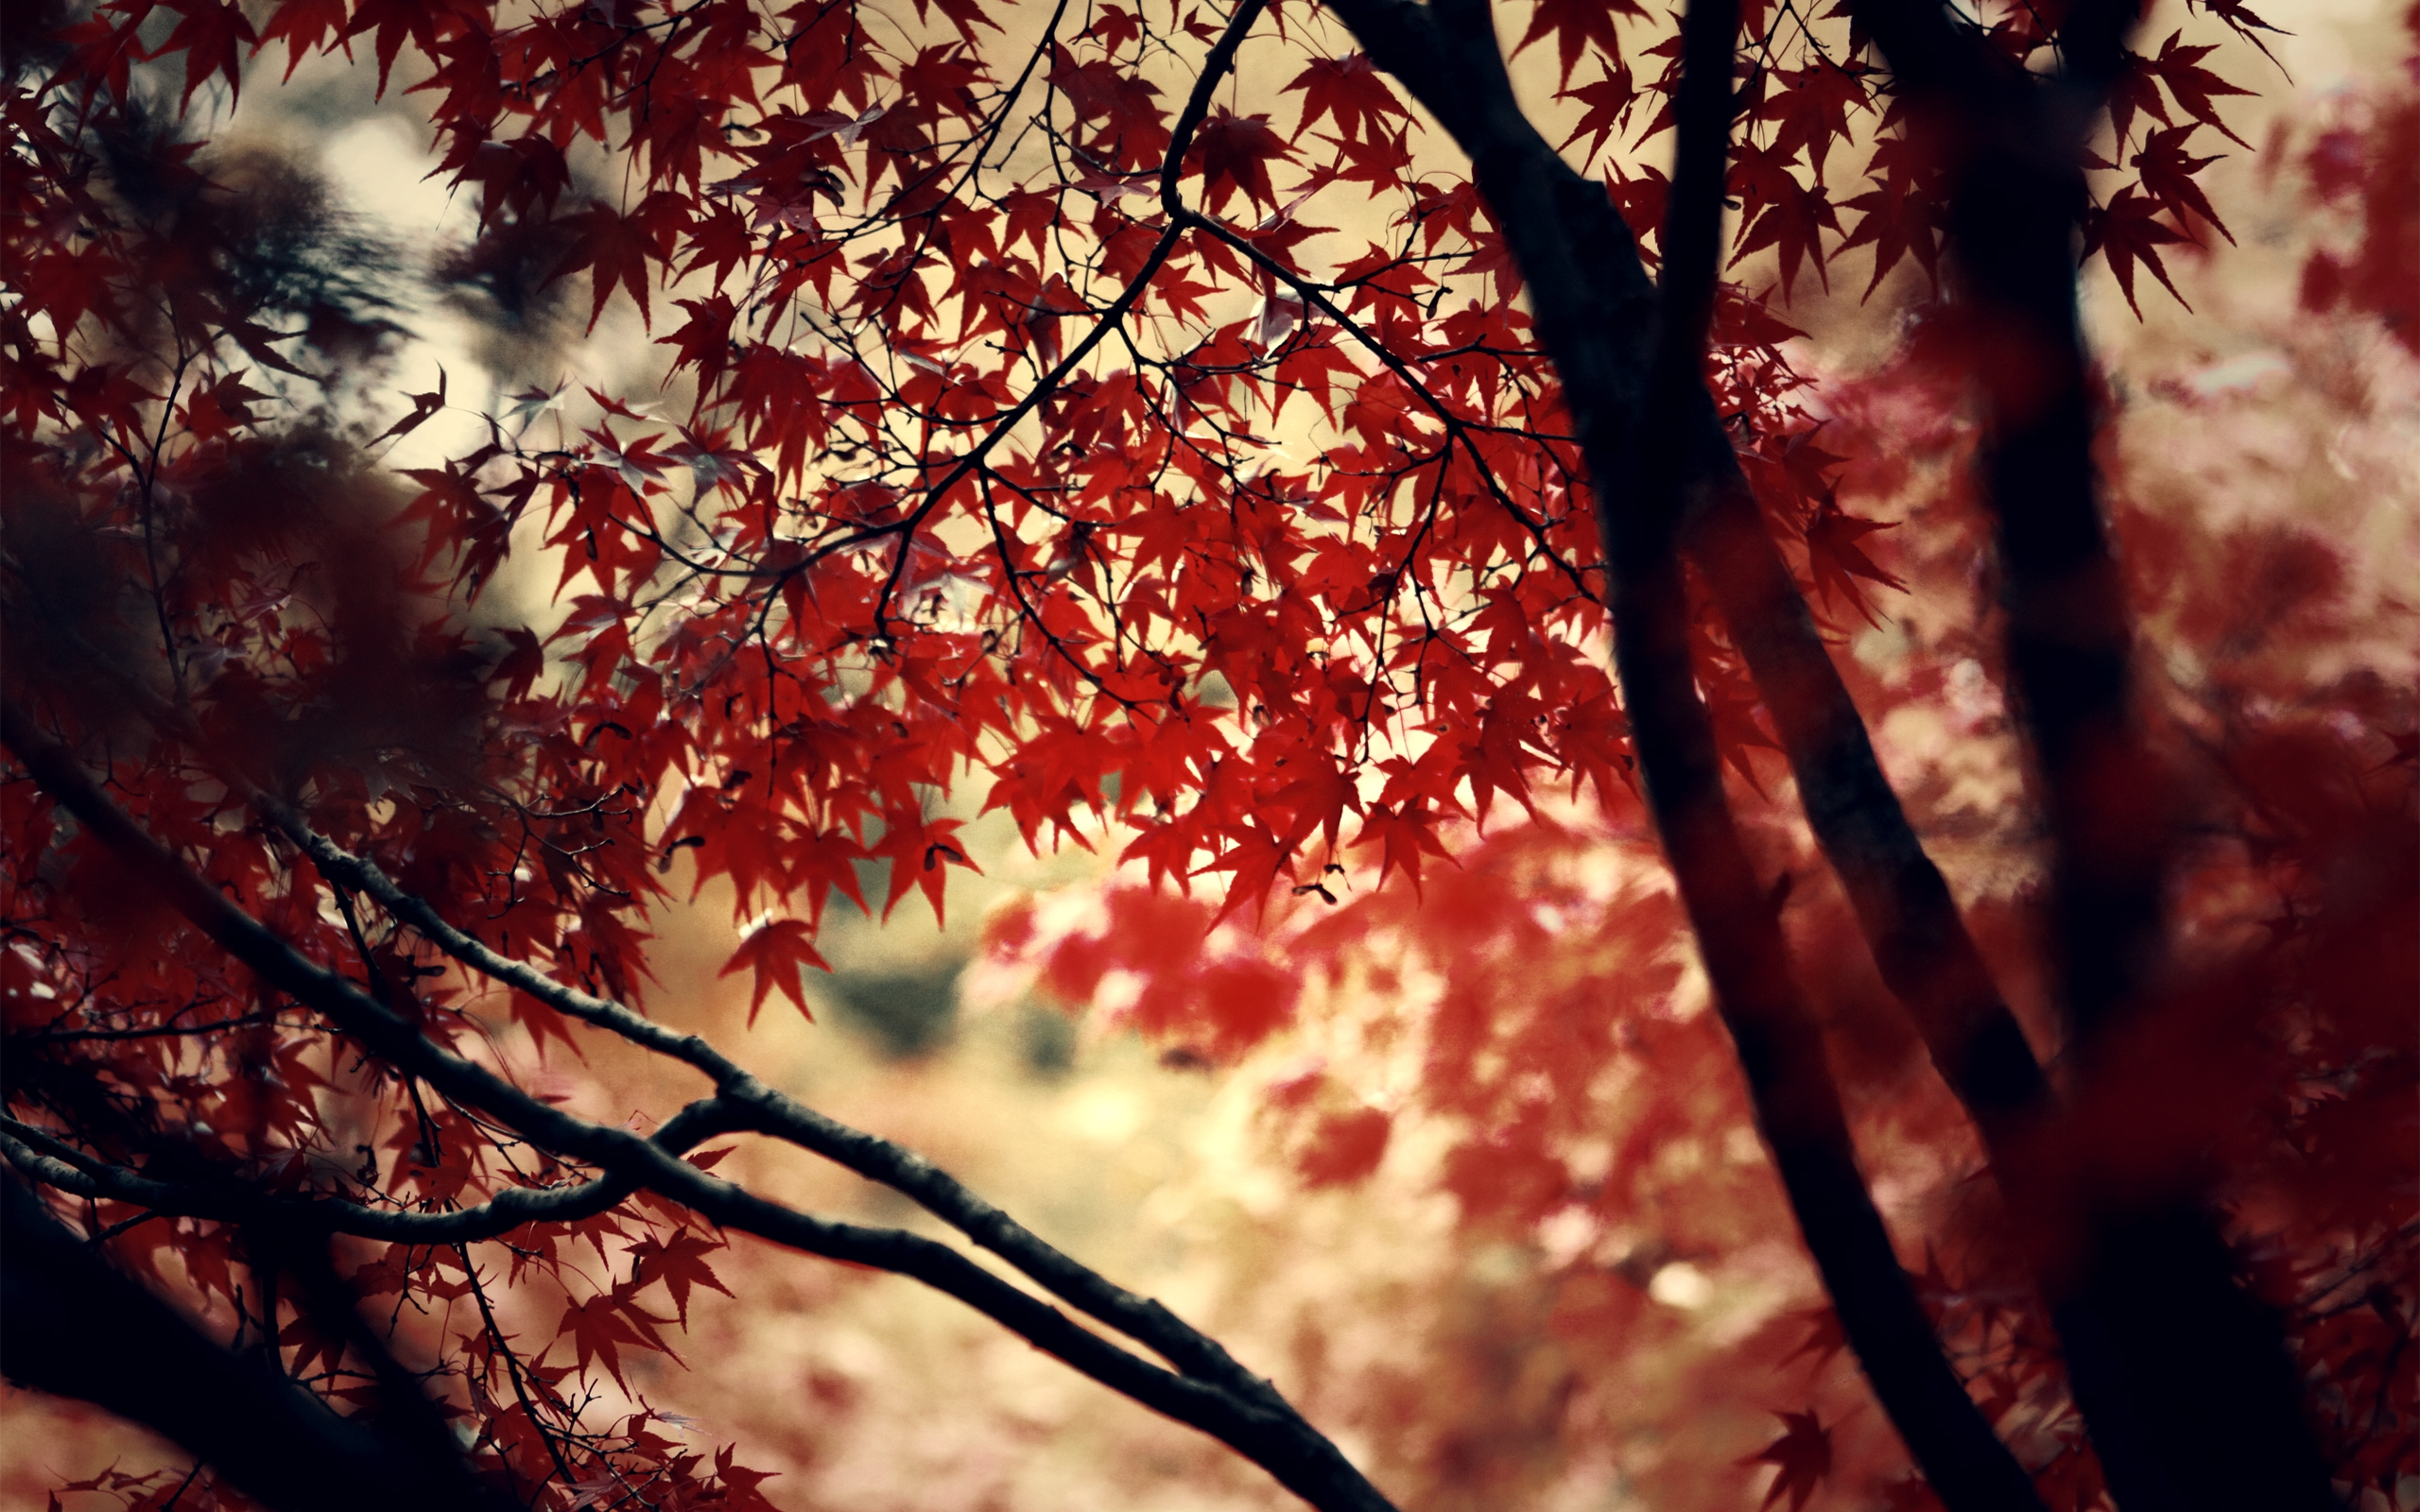 autumn wood forest photography deviantart maple leaf maple syrup maple key wallpaper 2560x1600. Black Bedroom Furniture Sets. Home Design Ideas